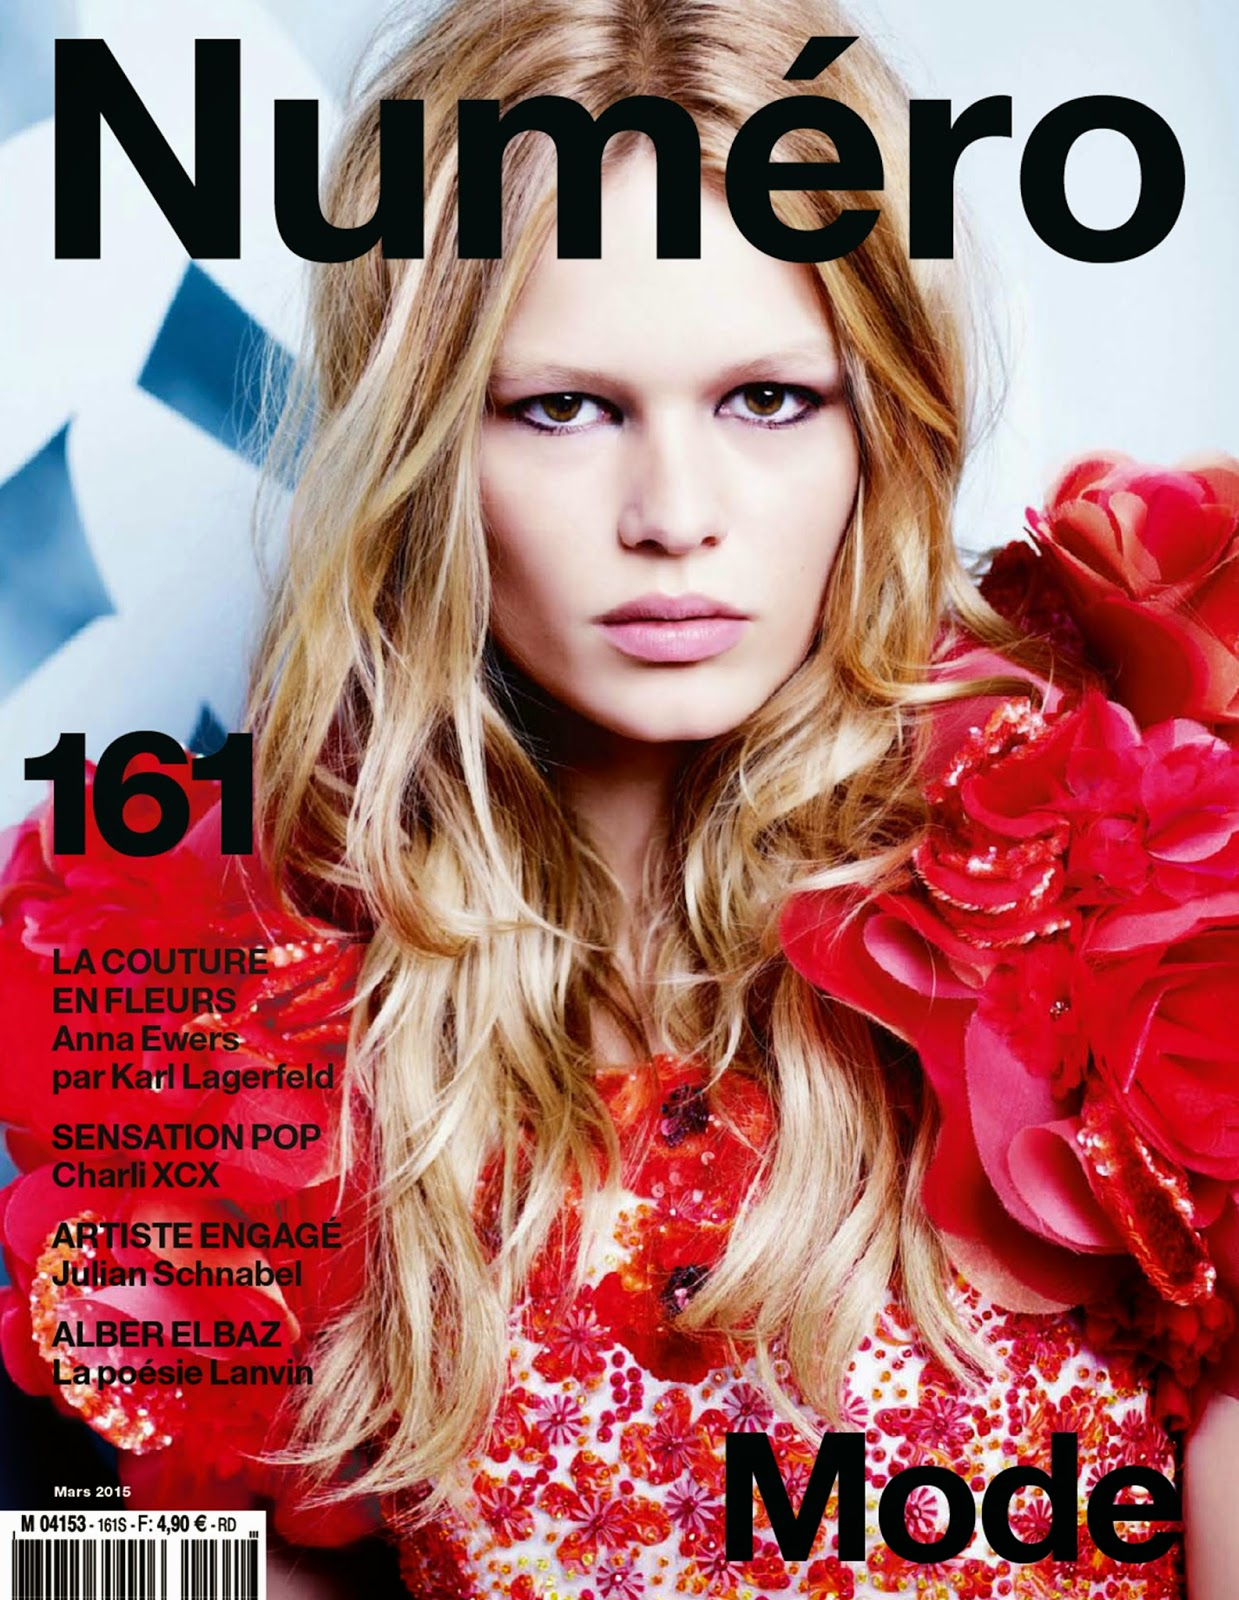 Fashion Model: Anna Ewers by Karl Lagerfeld - Numéro #161 March 2015